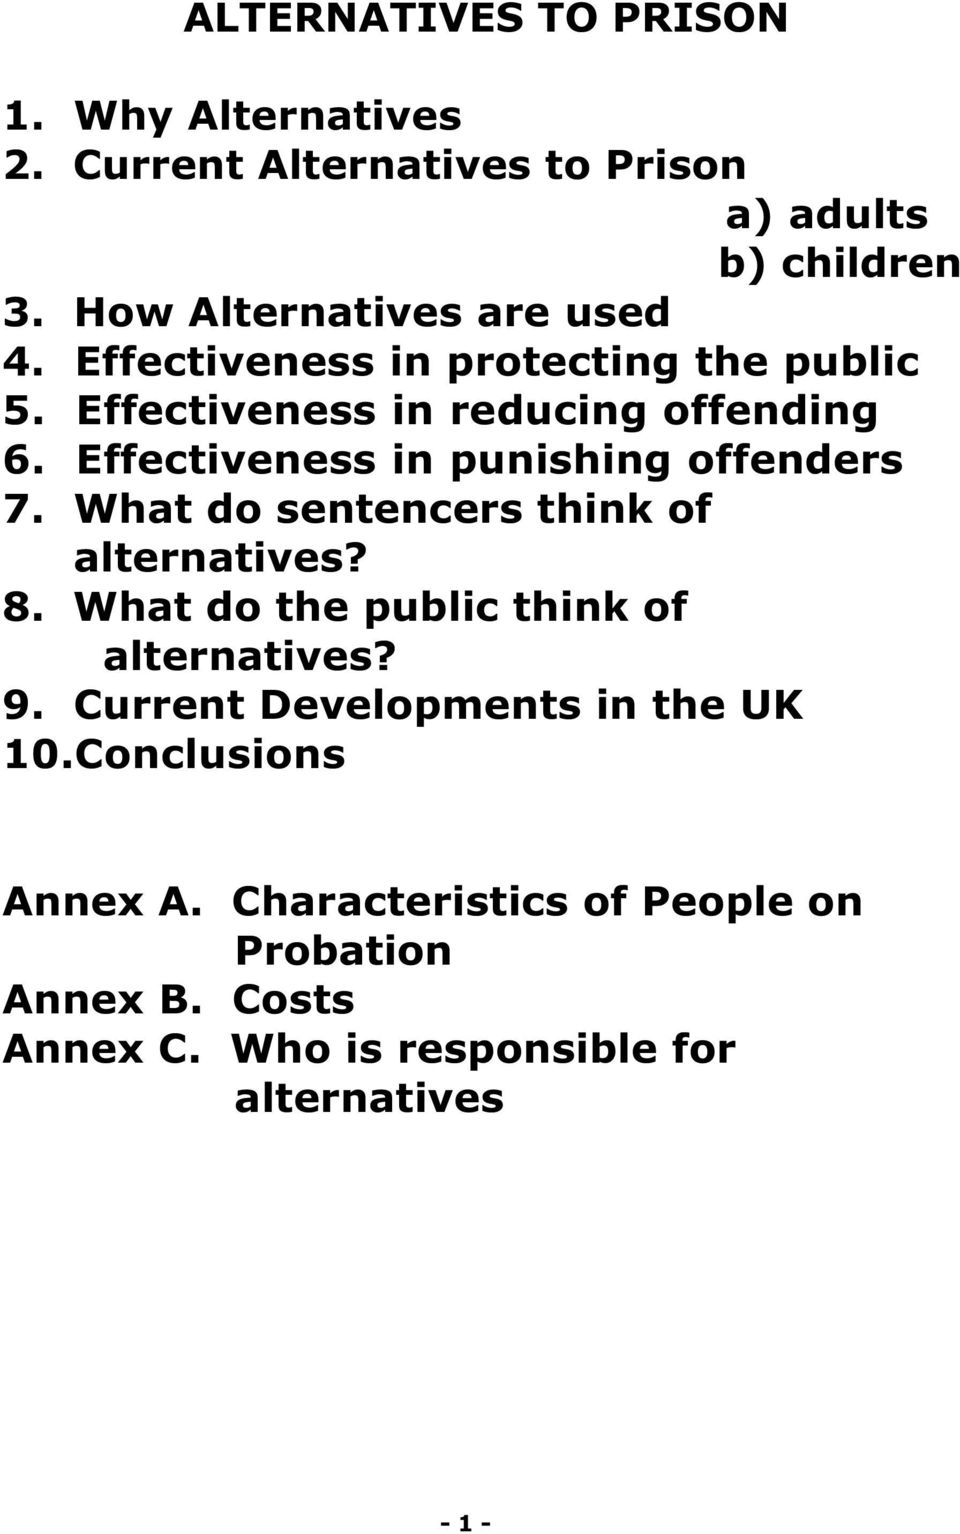 Effectiveness in punishing offenders 7. What do sentencers think of alternatives? 8. What do the public think of alternatives?